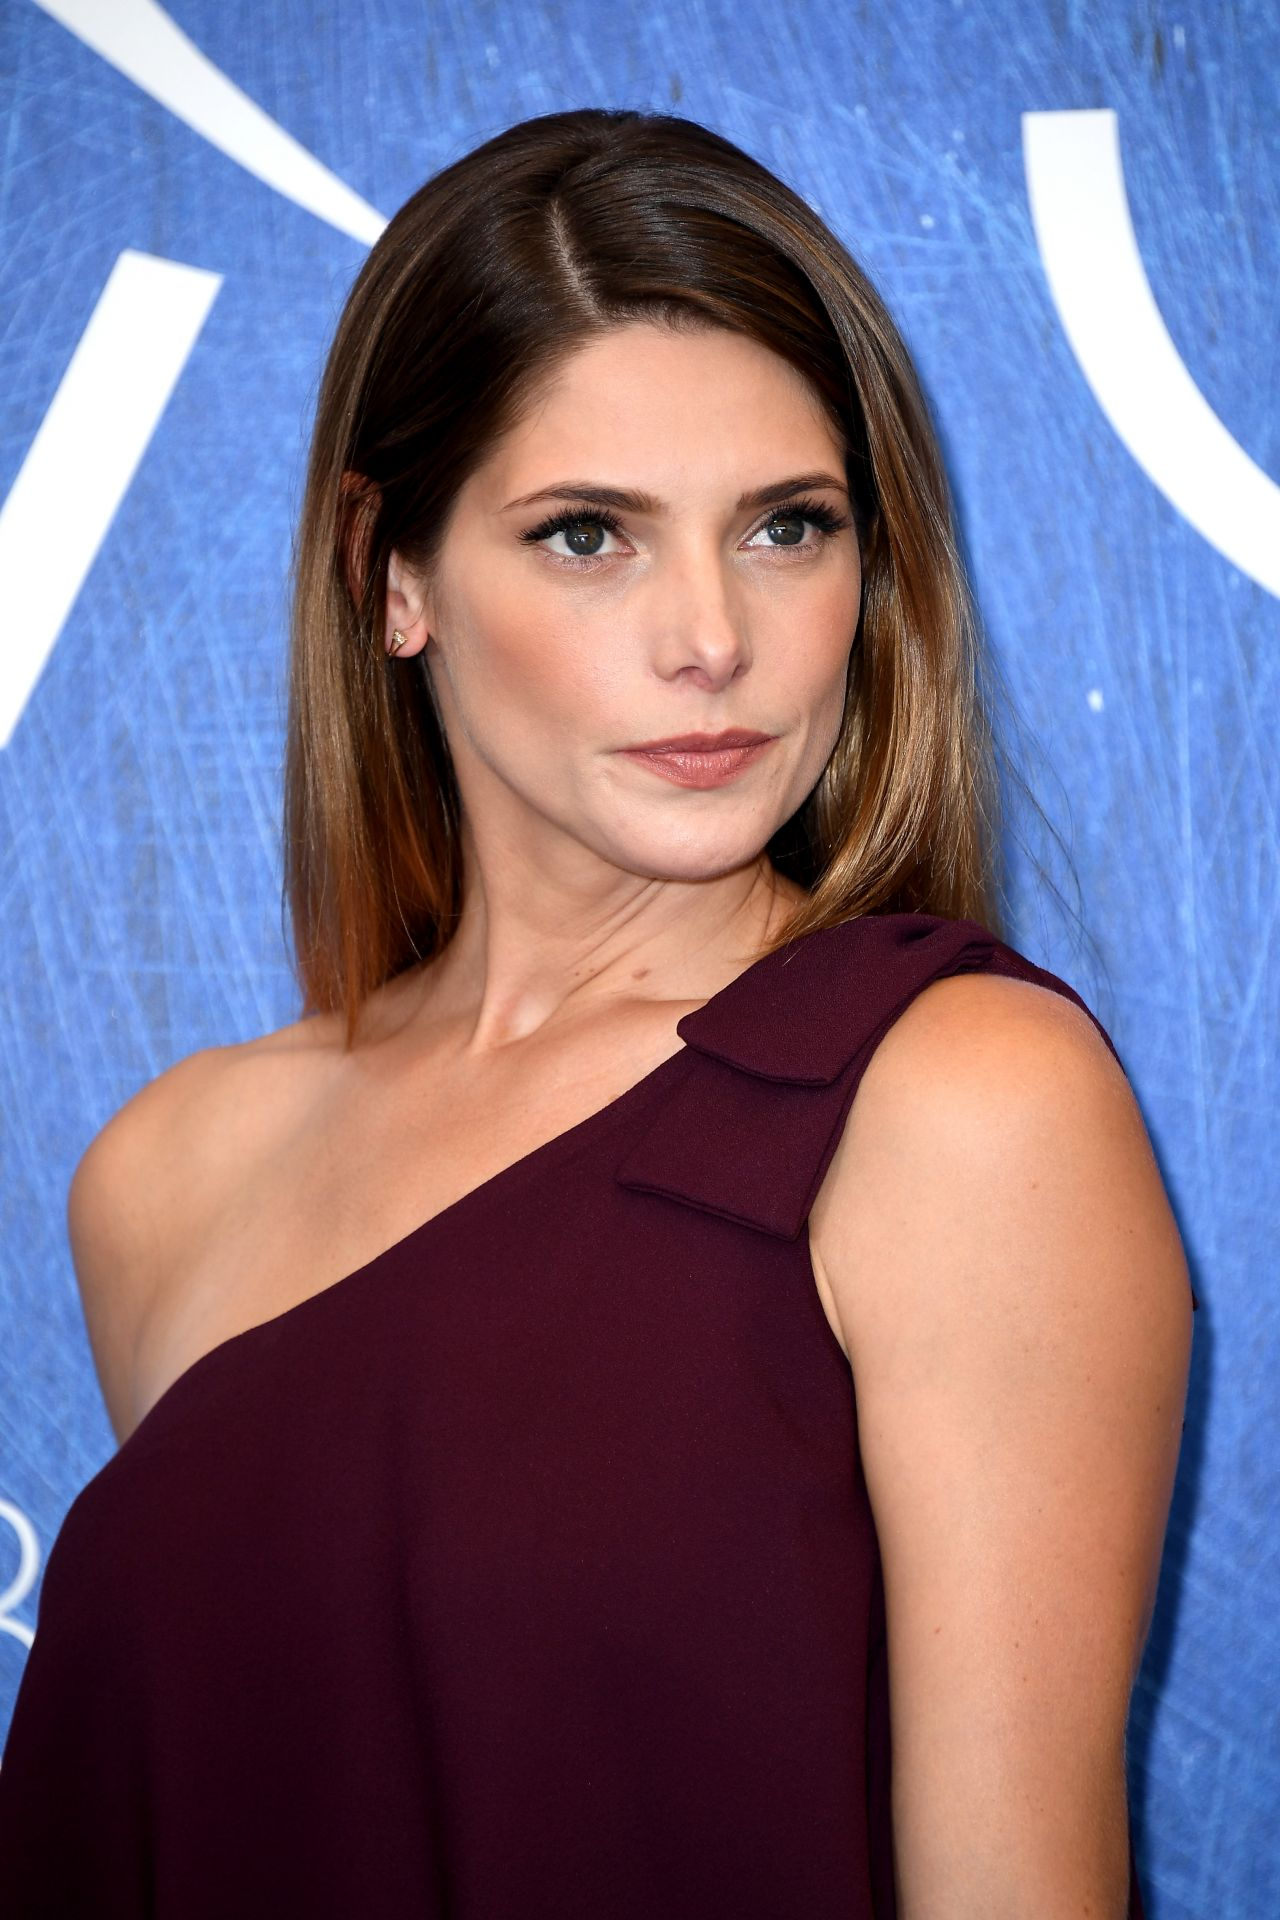 Ashley Greene In Dubious Battle Photocall At Venice